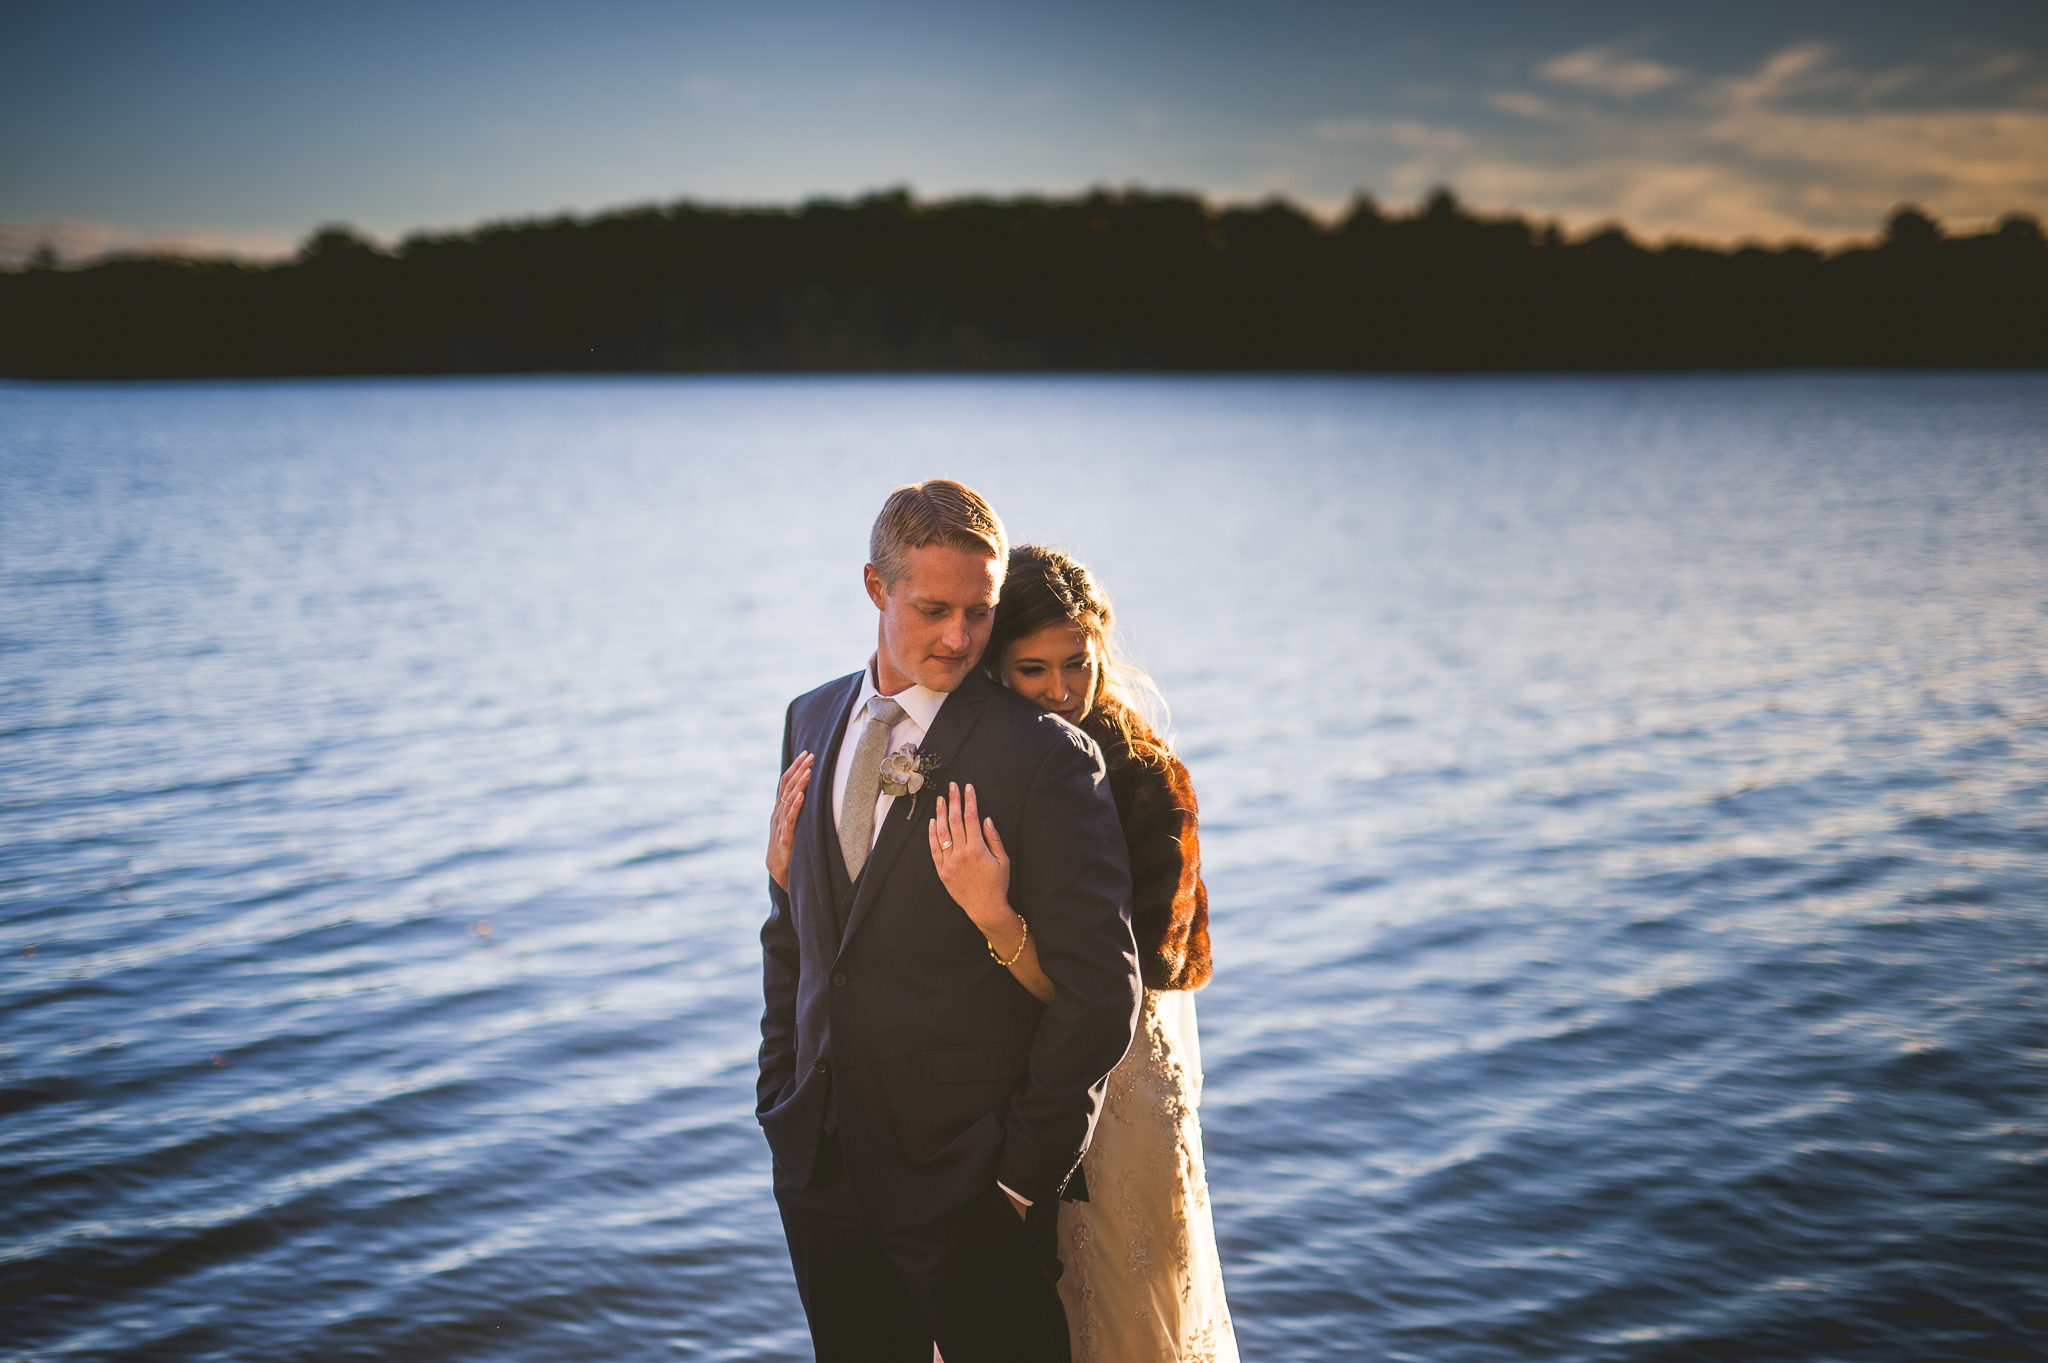 Mandy + Mike // Amazing Wedding at Stout's Island Wisconsin Preview